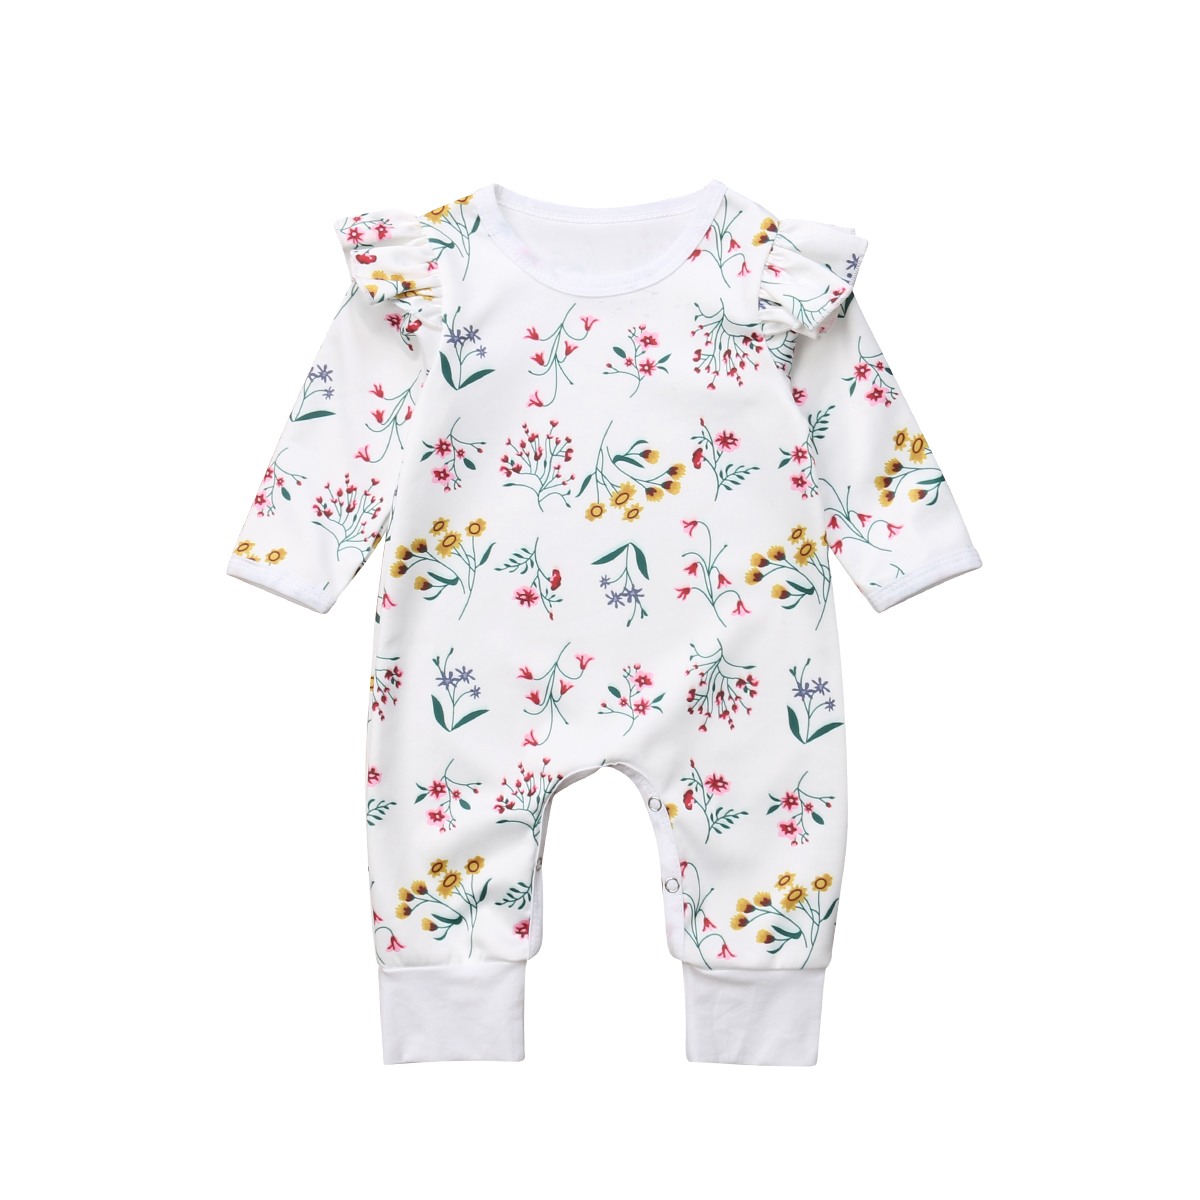 5a643f274 Detail Feedback Questions about Kids Newborn Baby Girls Rompers ...